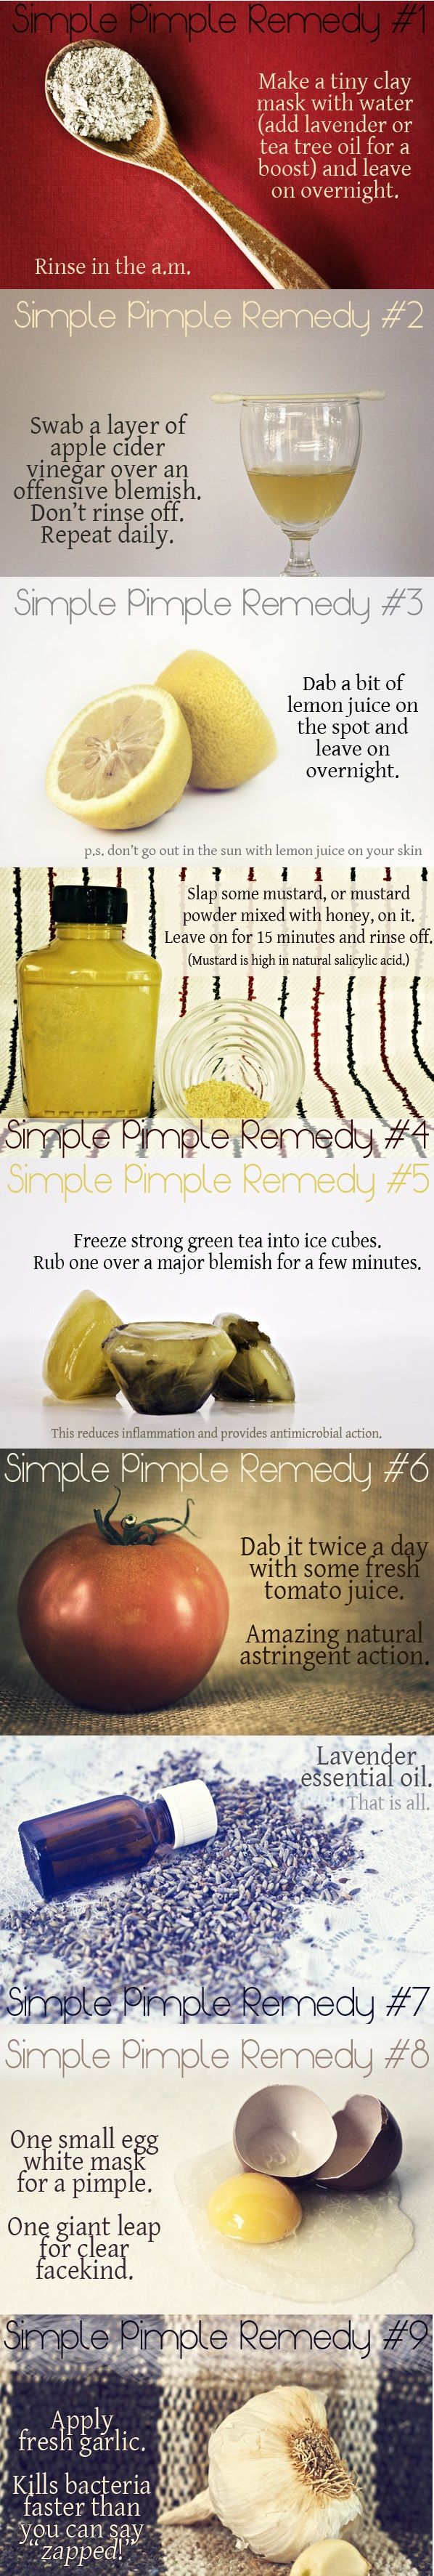 9 Pretty Simple Pimple Home Remedies    http://www.crunchybetty.com/9-pretty-simple-pimple-home-remedies